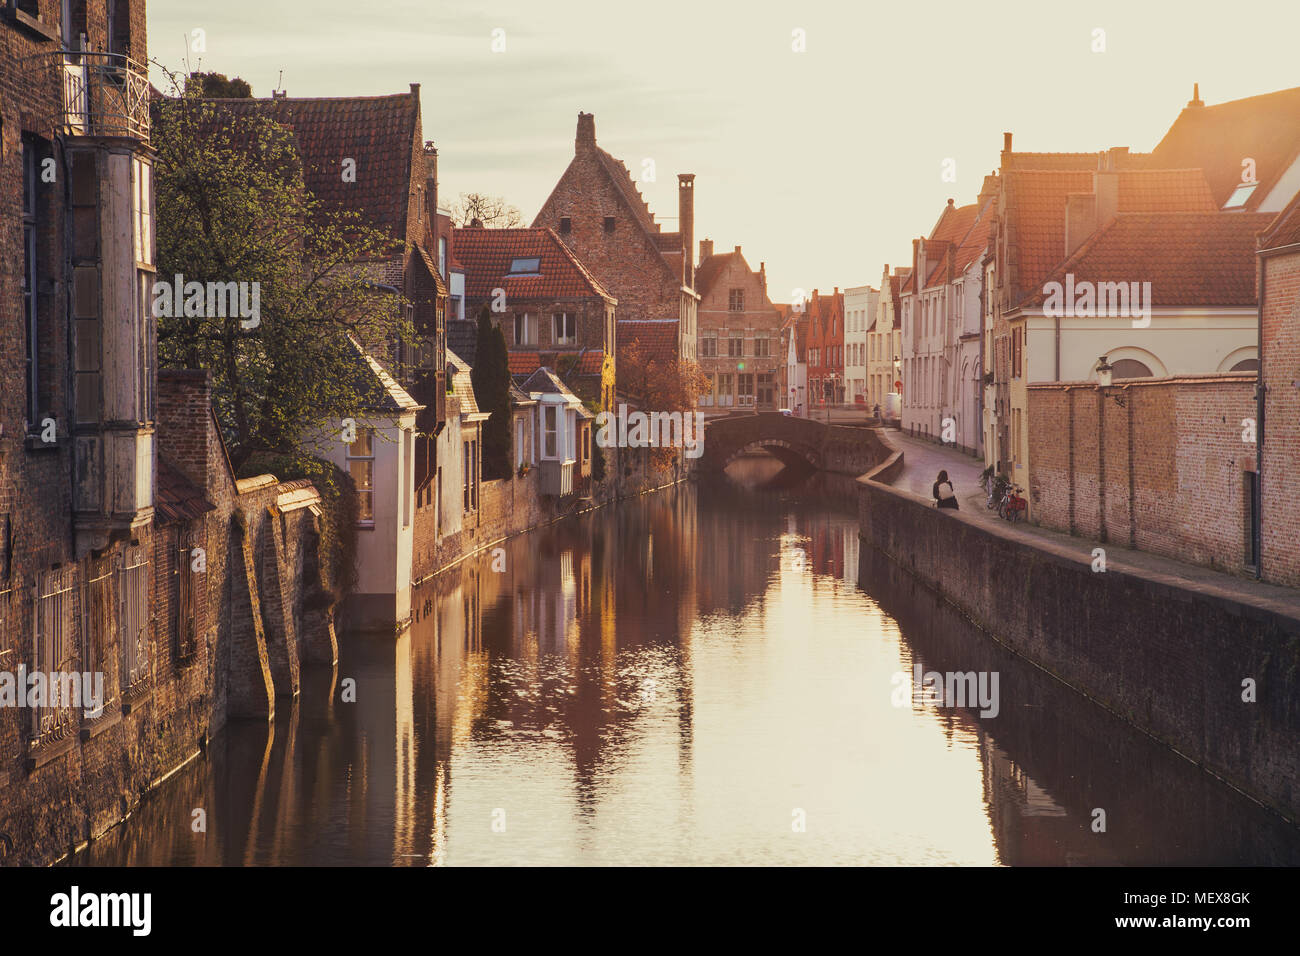 Classic view of the historic city center of Brugge, often referred to as The Venice of the North, in beautiful golden morning light at sunrise - Stock Image